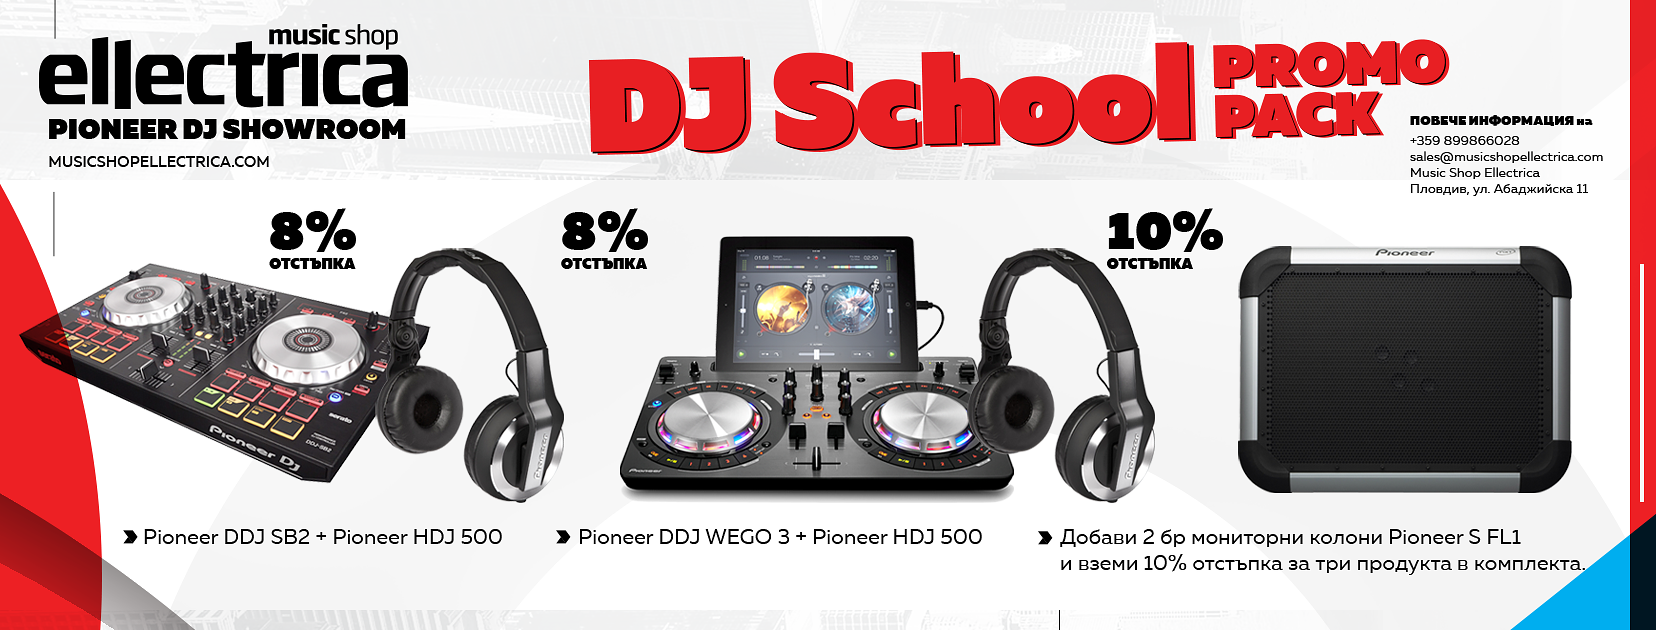 DJSchool-Promo-Pack_facebook_cover